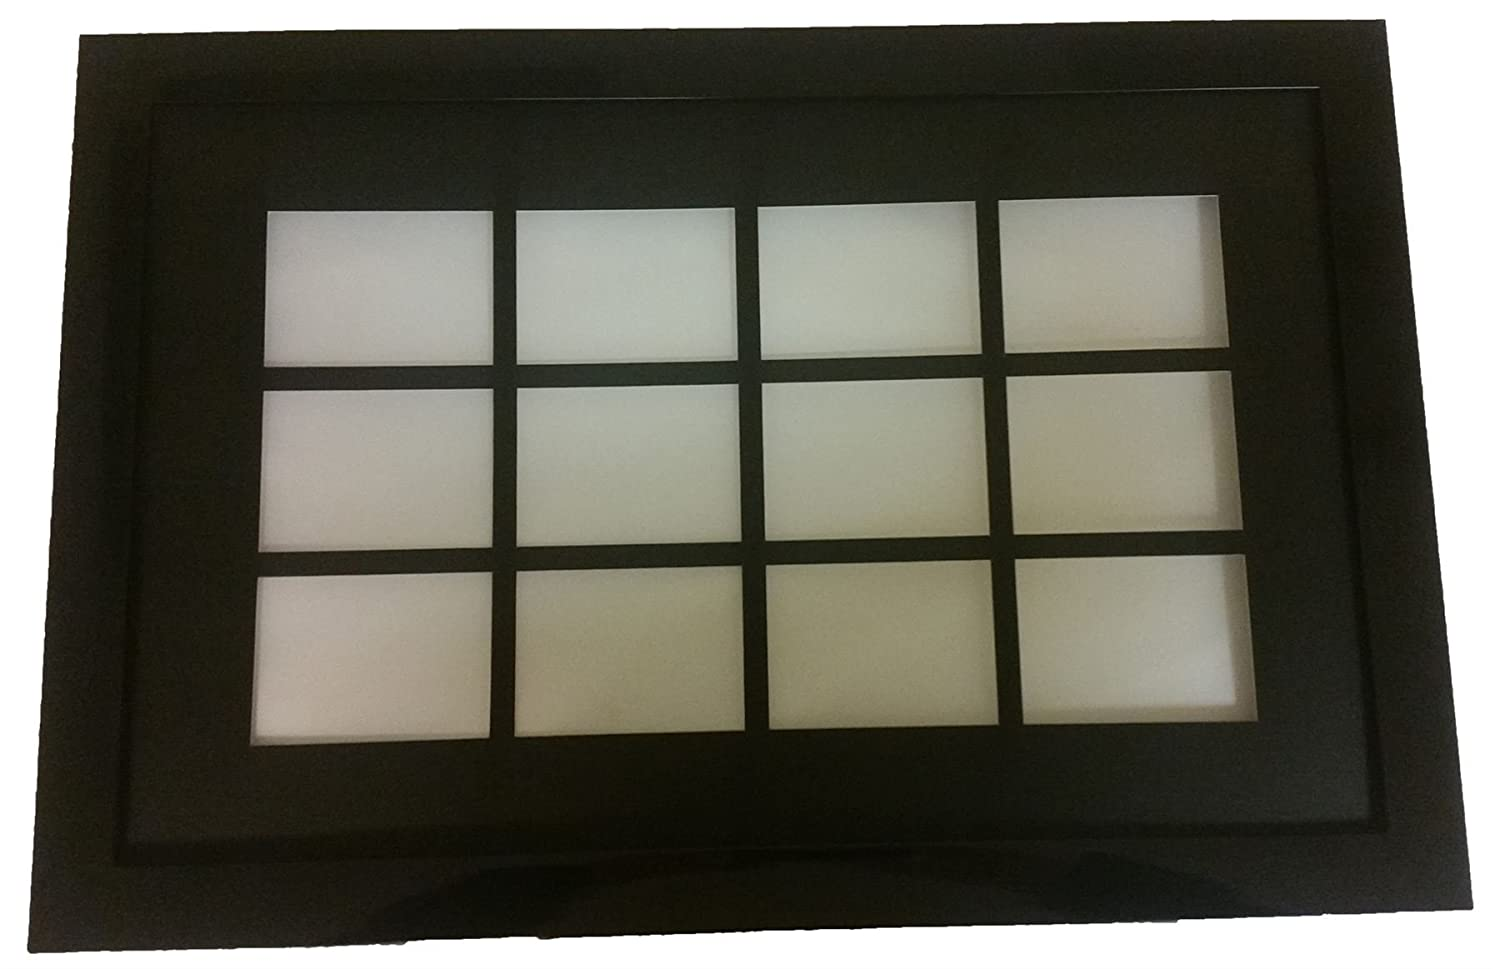 Frame for 12 x Trading Cards (90 mm x 65 mm) Black Finish Robin Hood Direct